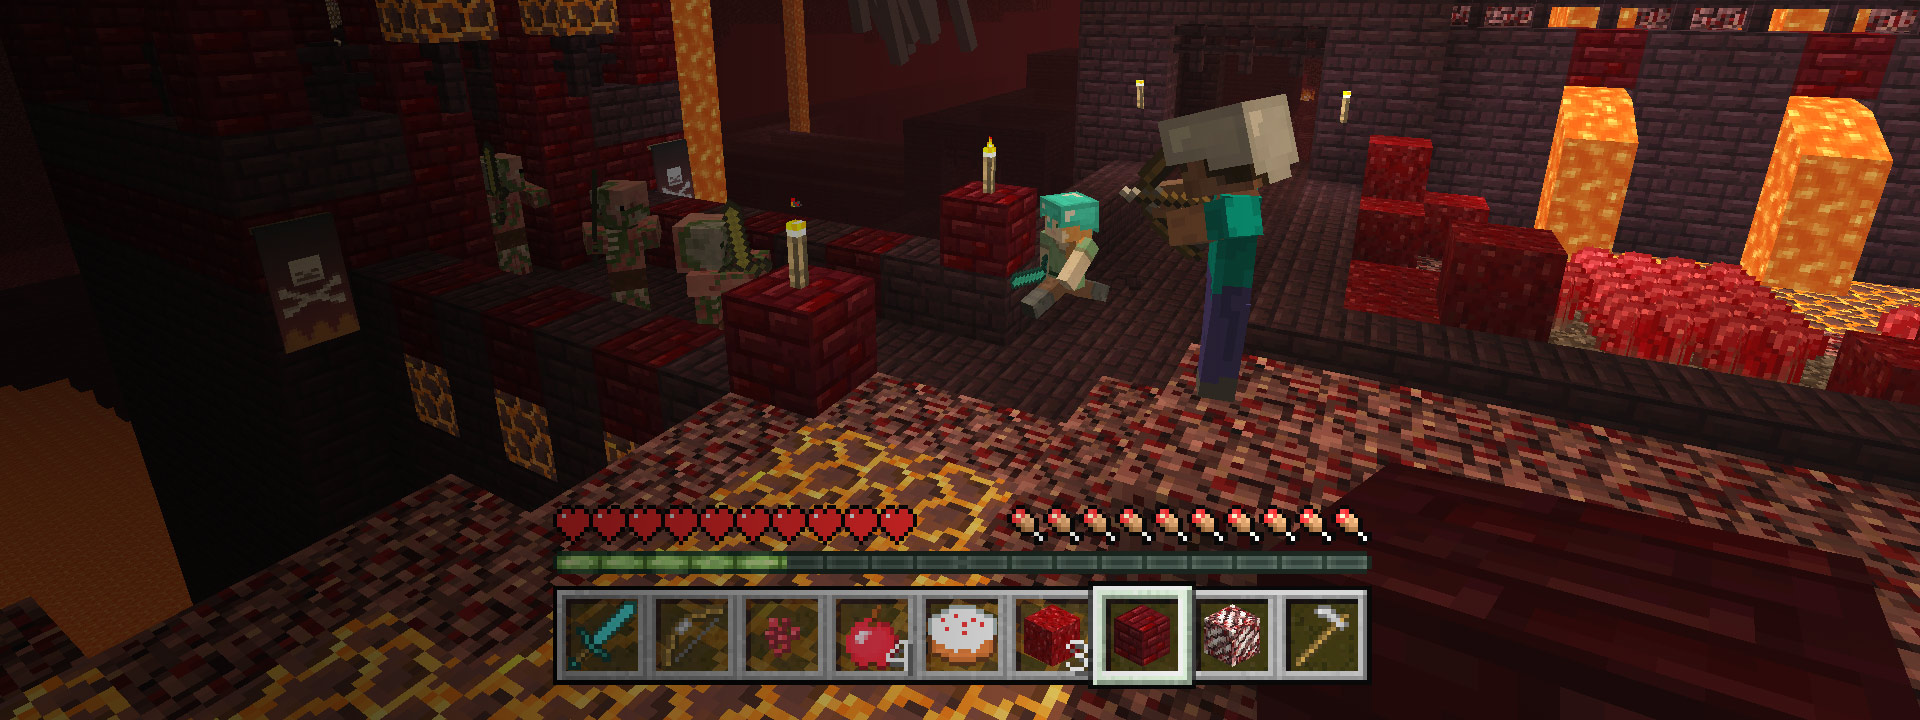 Minecraft is more fun with friends, Minecraft characters in a battle